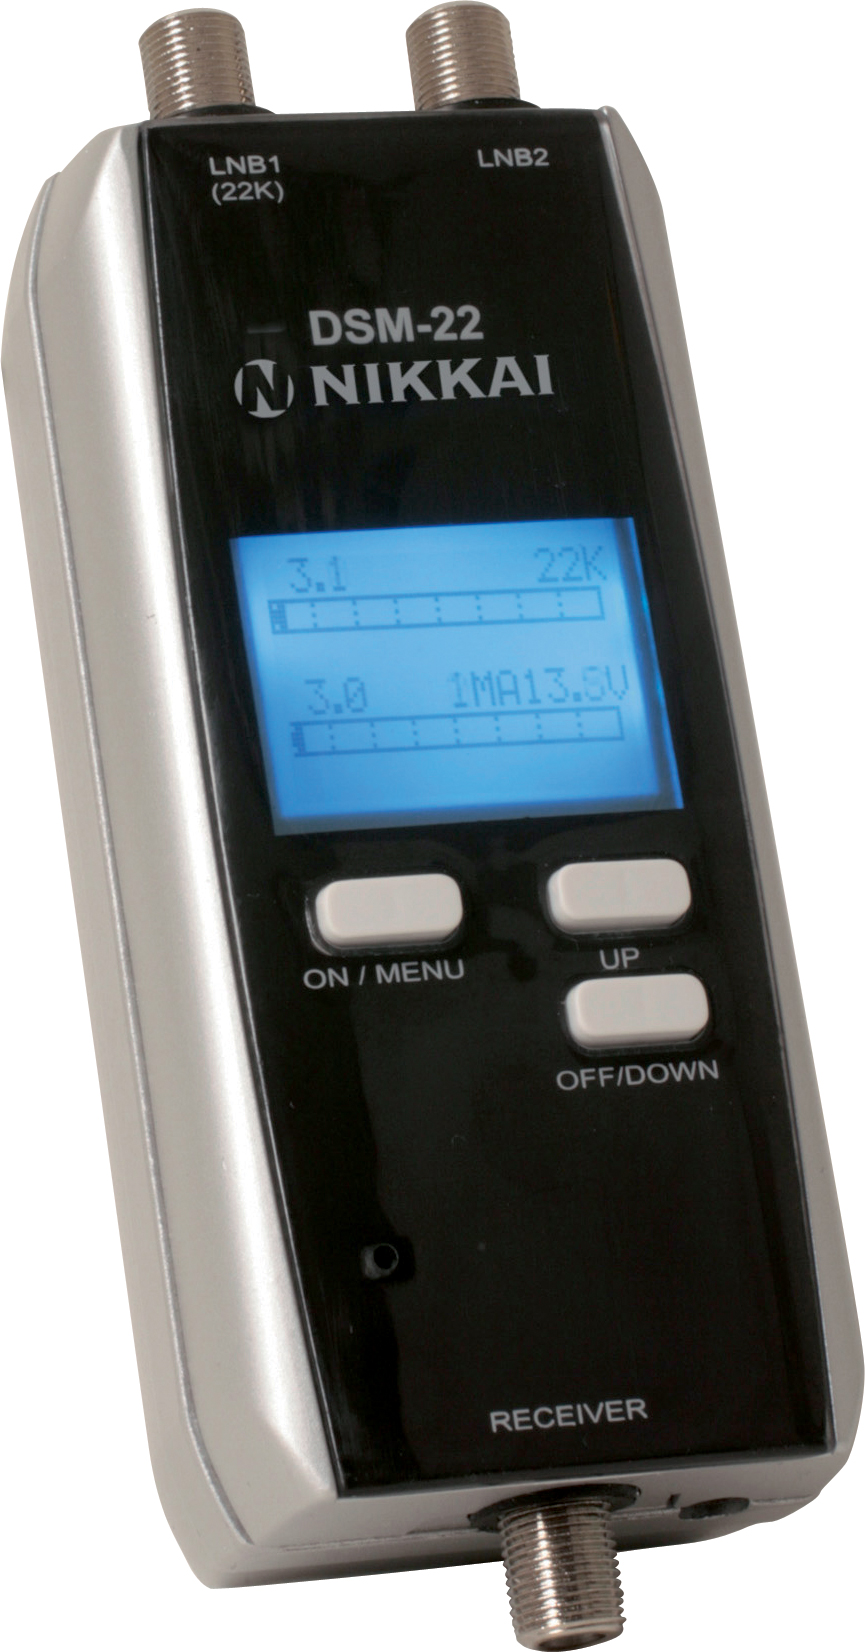 Details about NIKKAI DIGITAL DUAL SATELLITE DISH SIGNAL METER FINDER